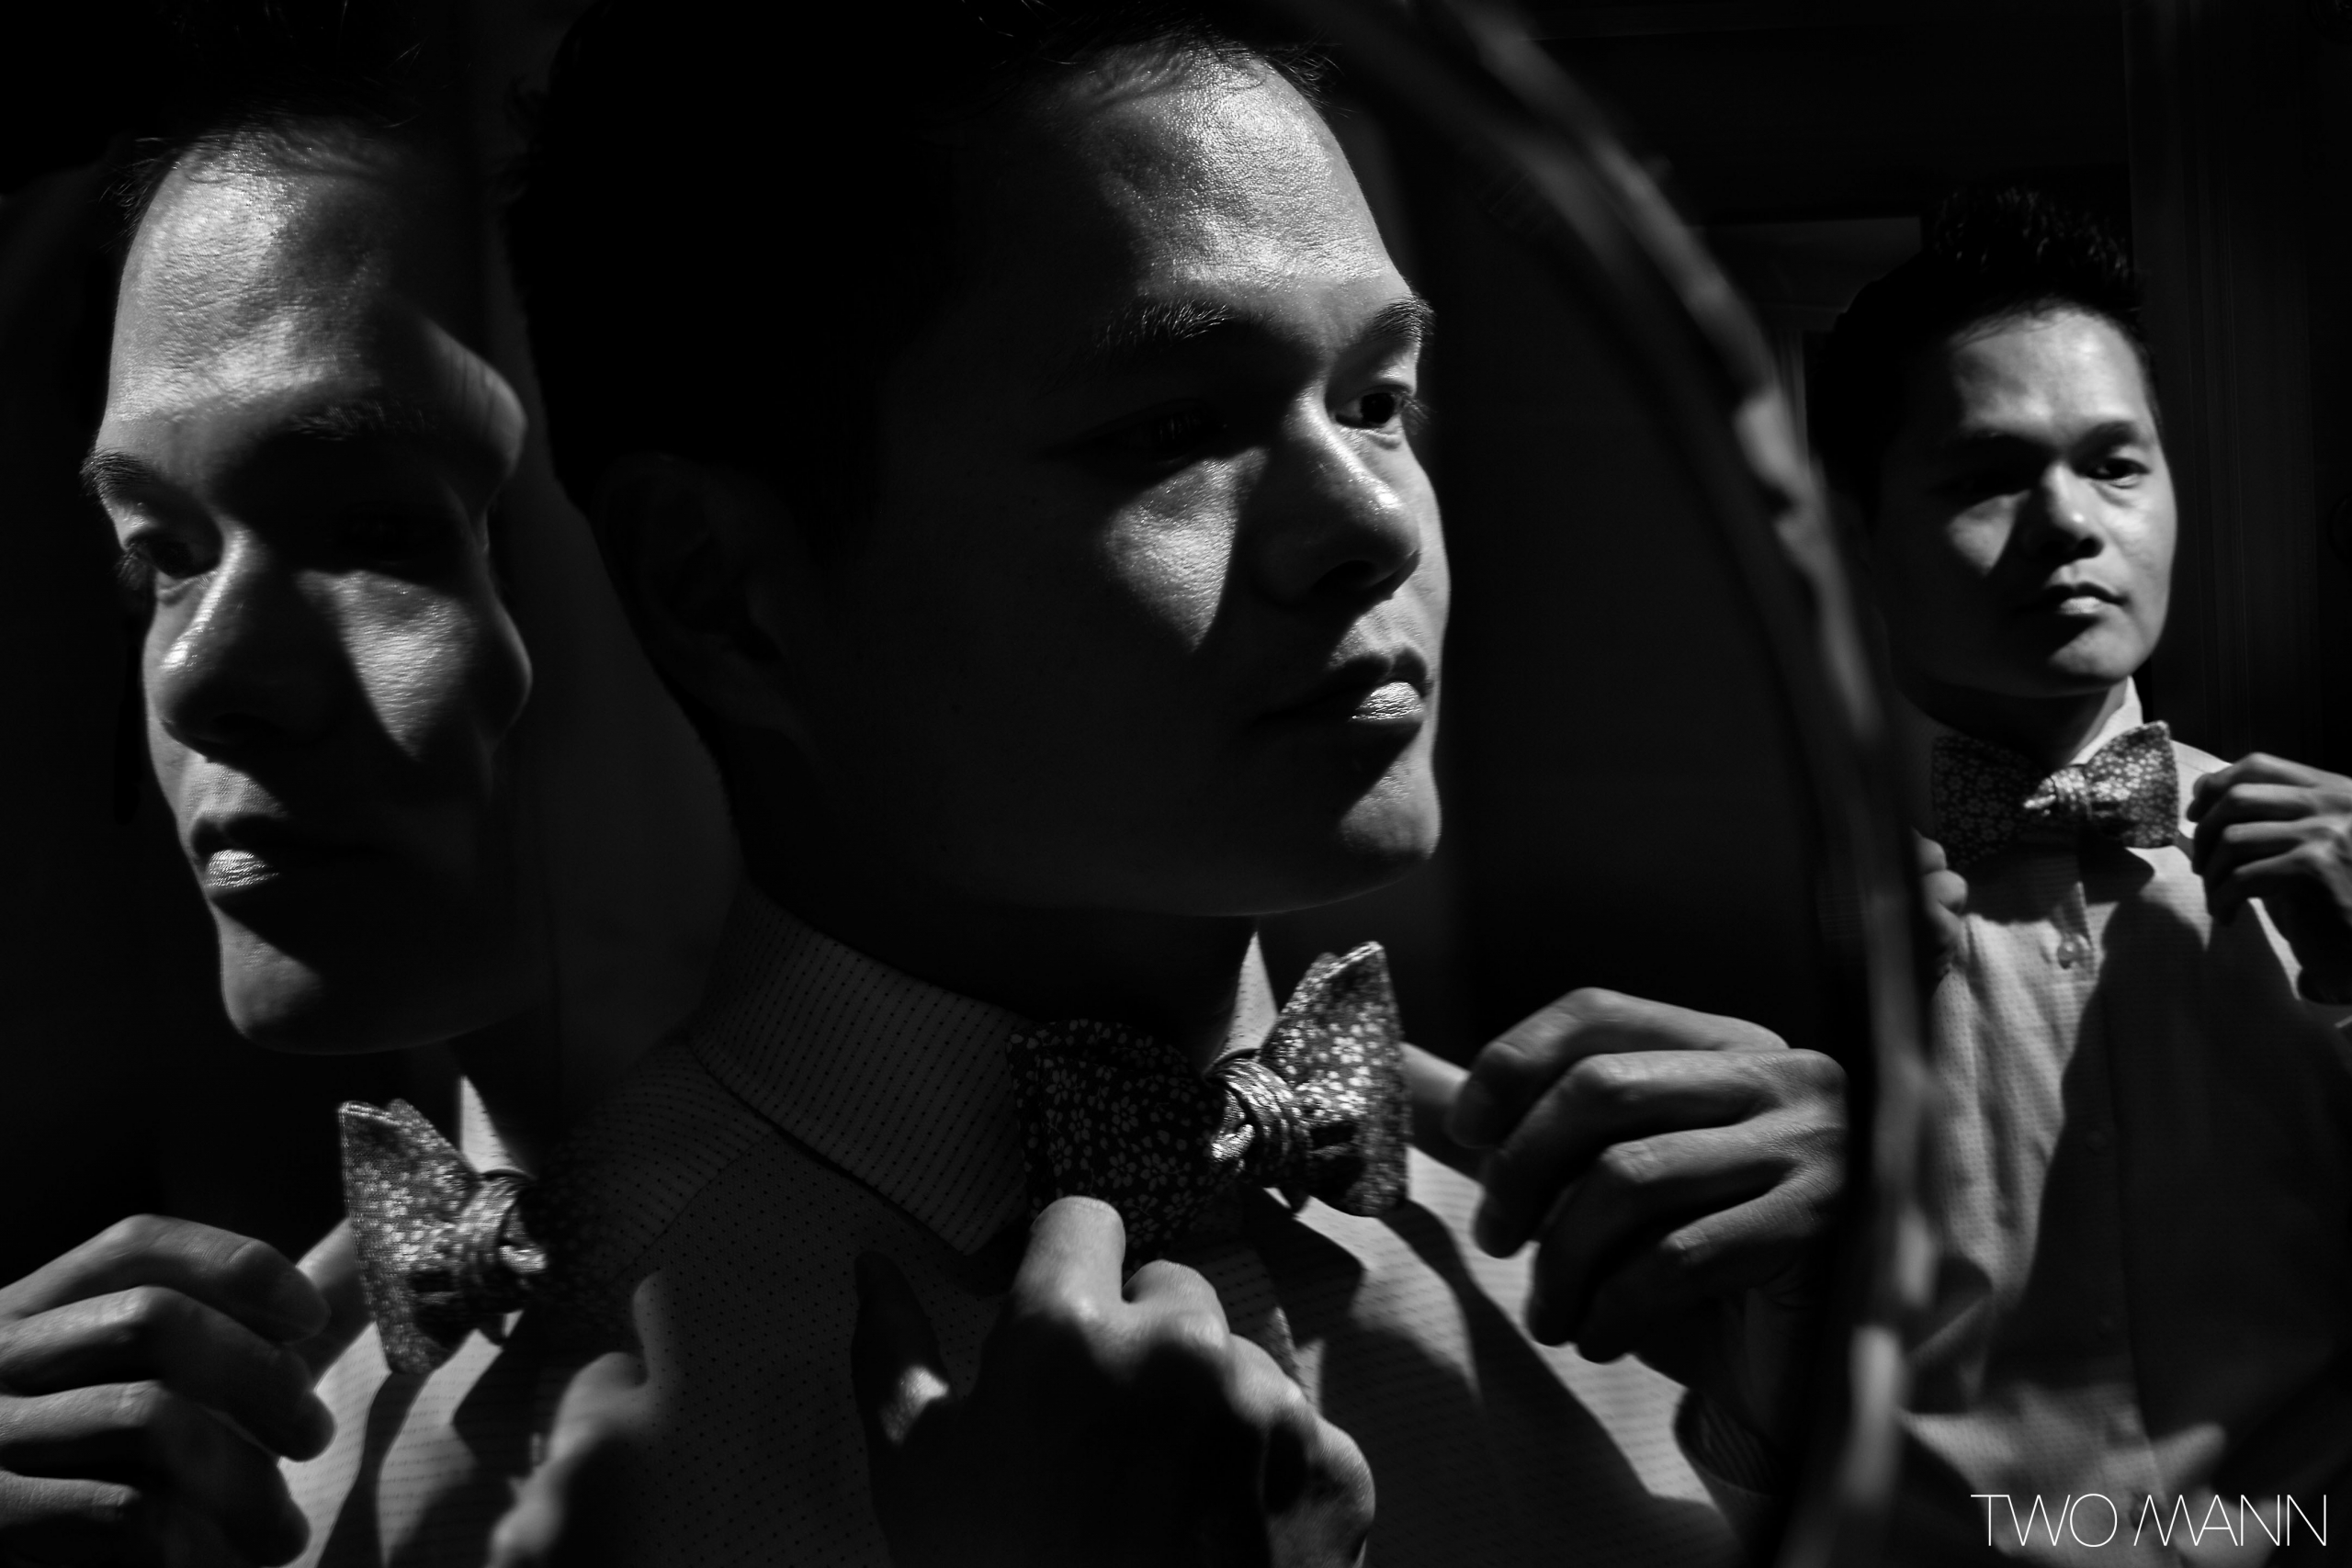 a groom tying a bow tie in front of a mirror